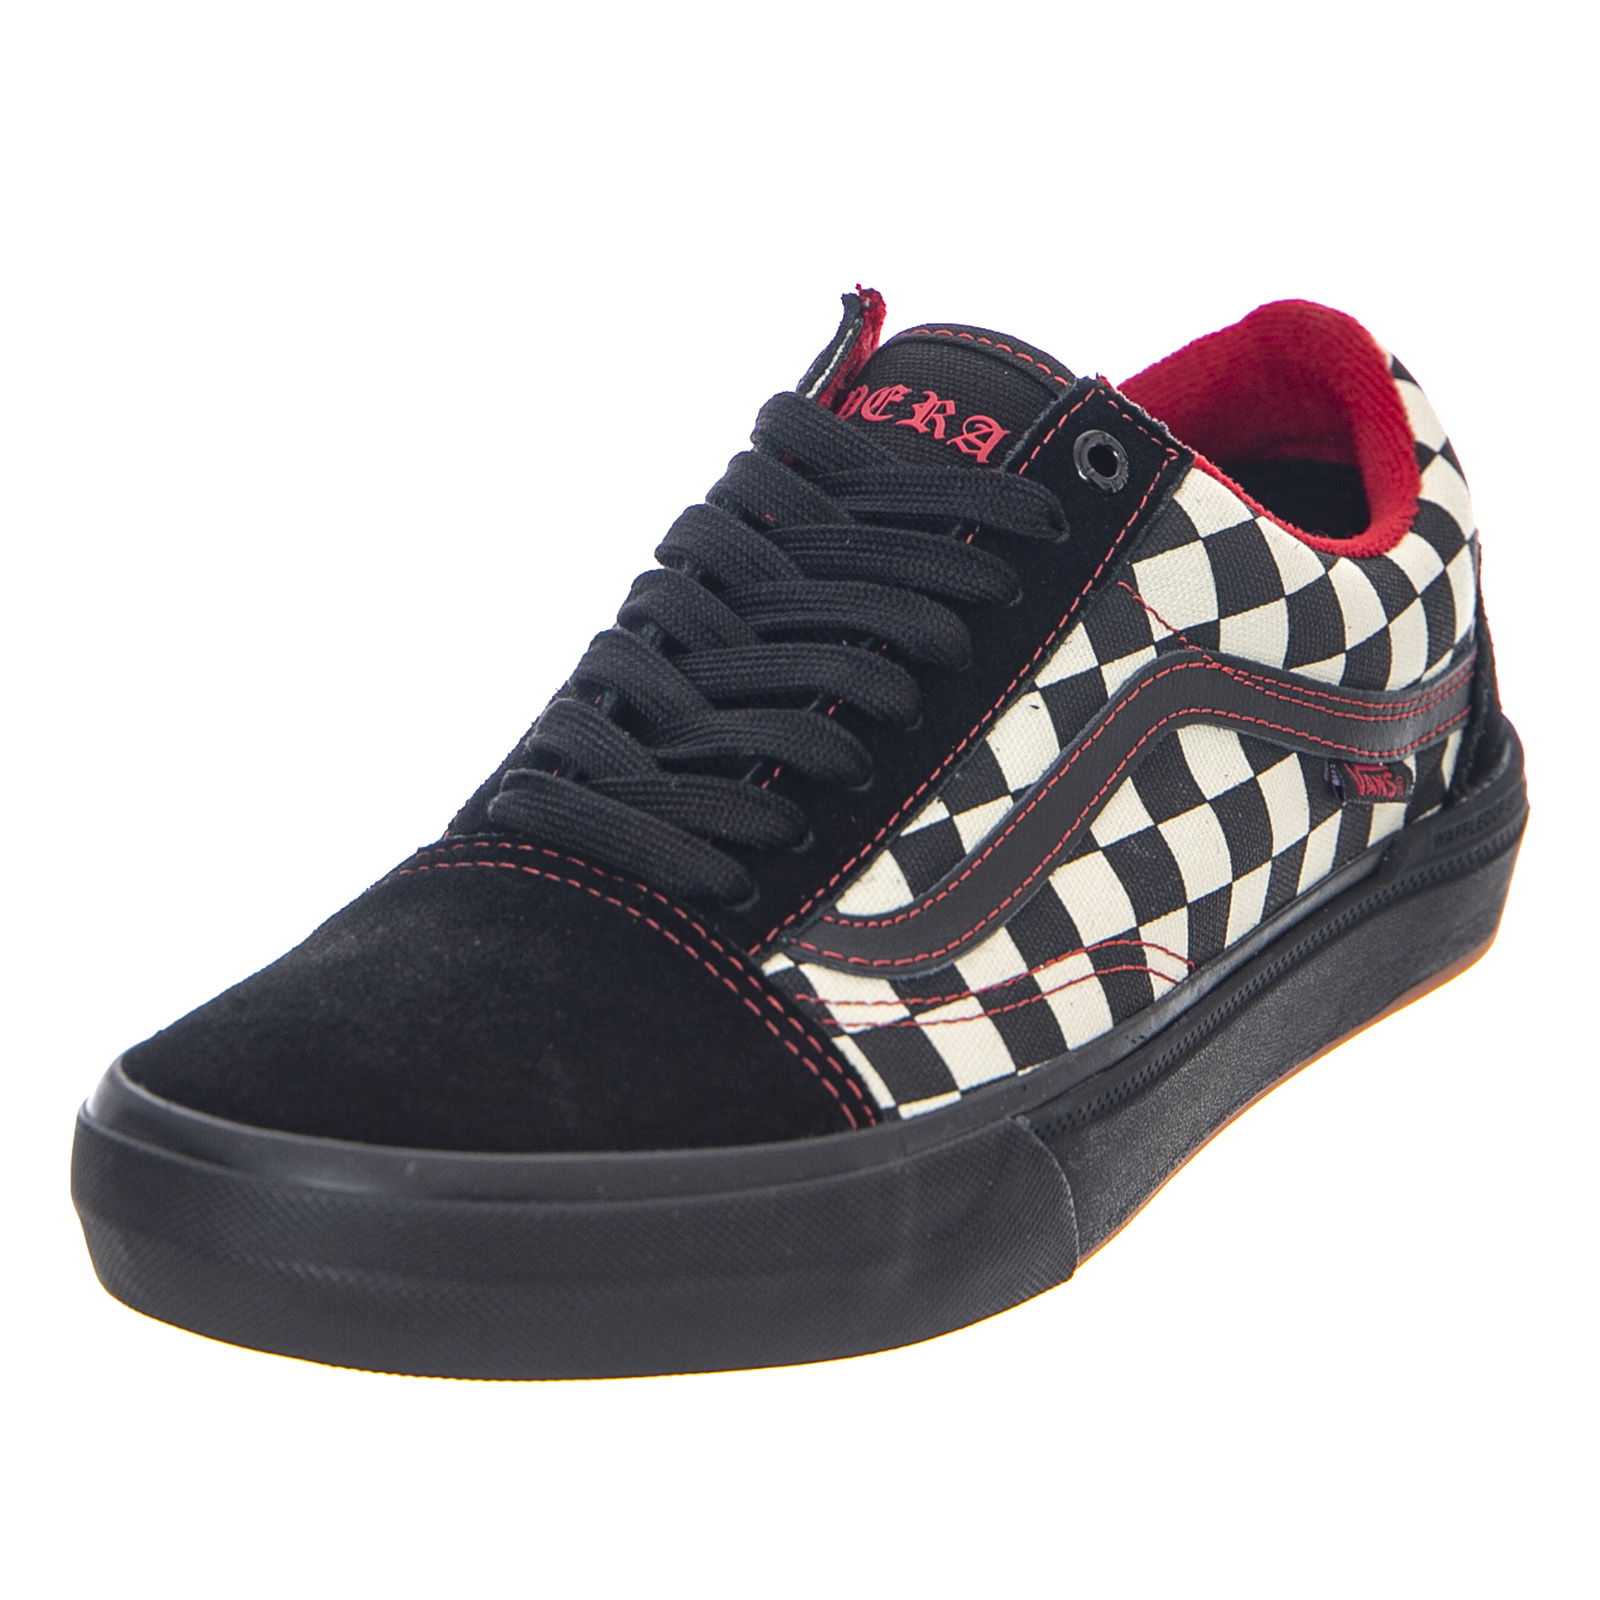 Details about Vans Mn Old Skool pro BMX - Checkerboard/Black/White - Sneakers Low Black Mens